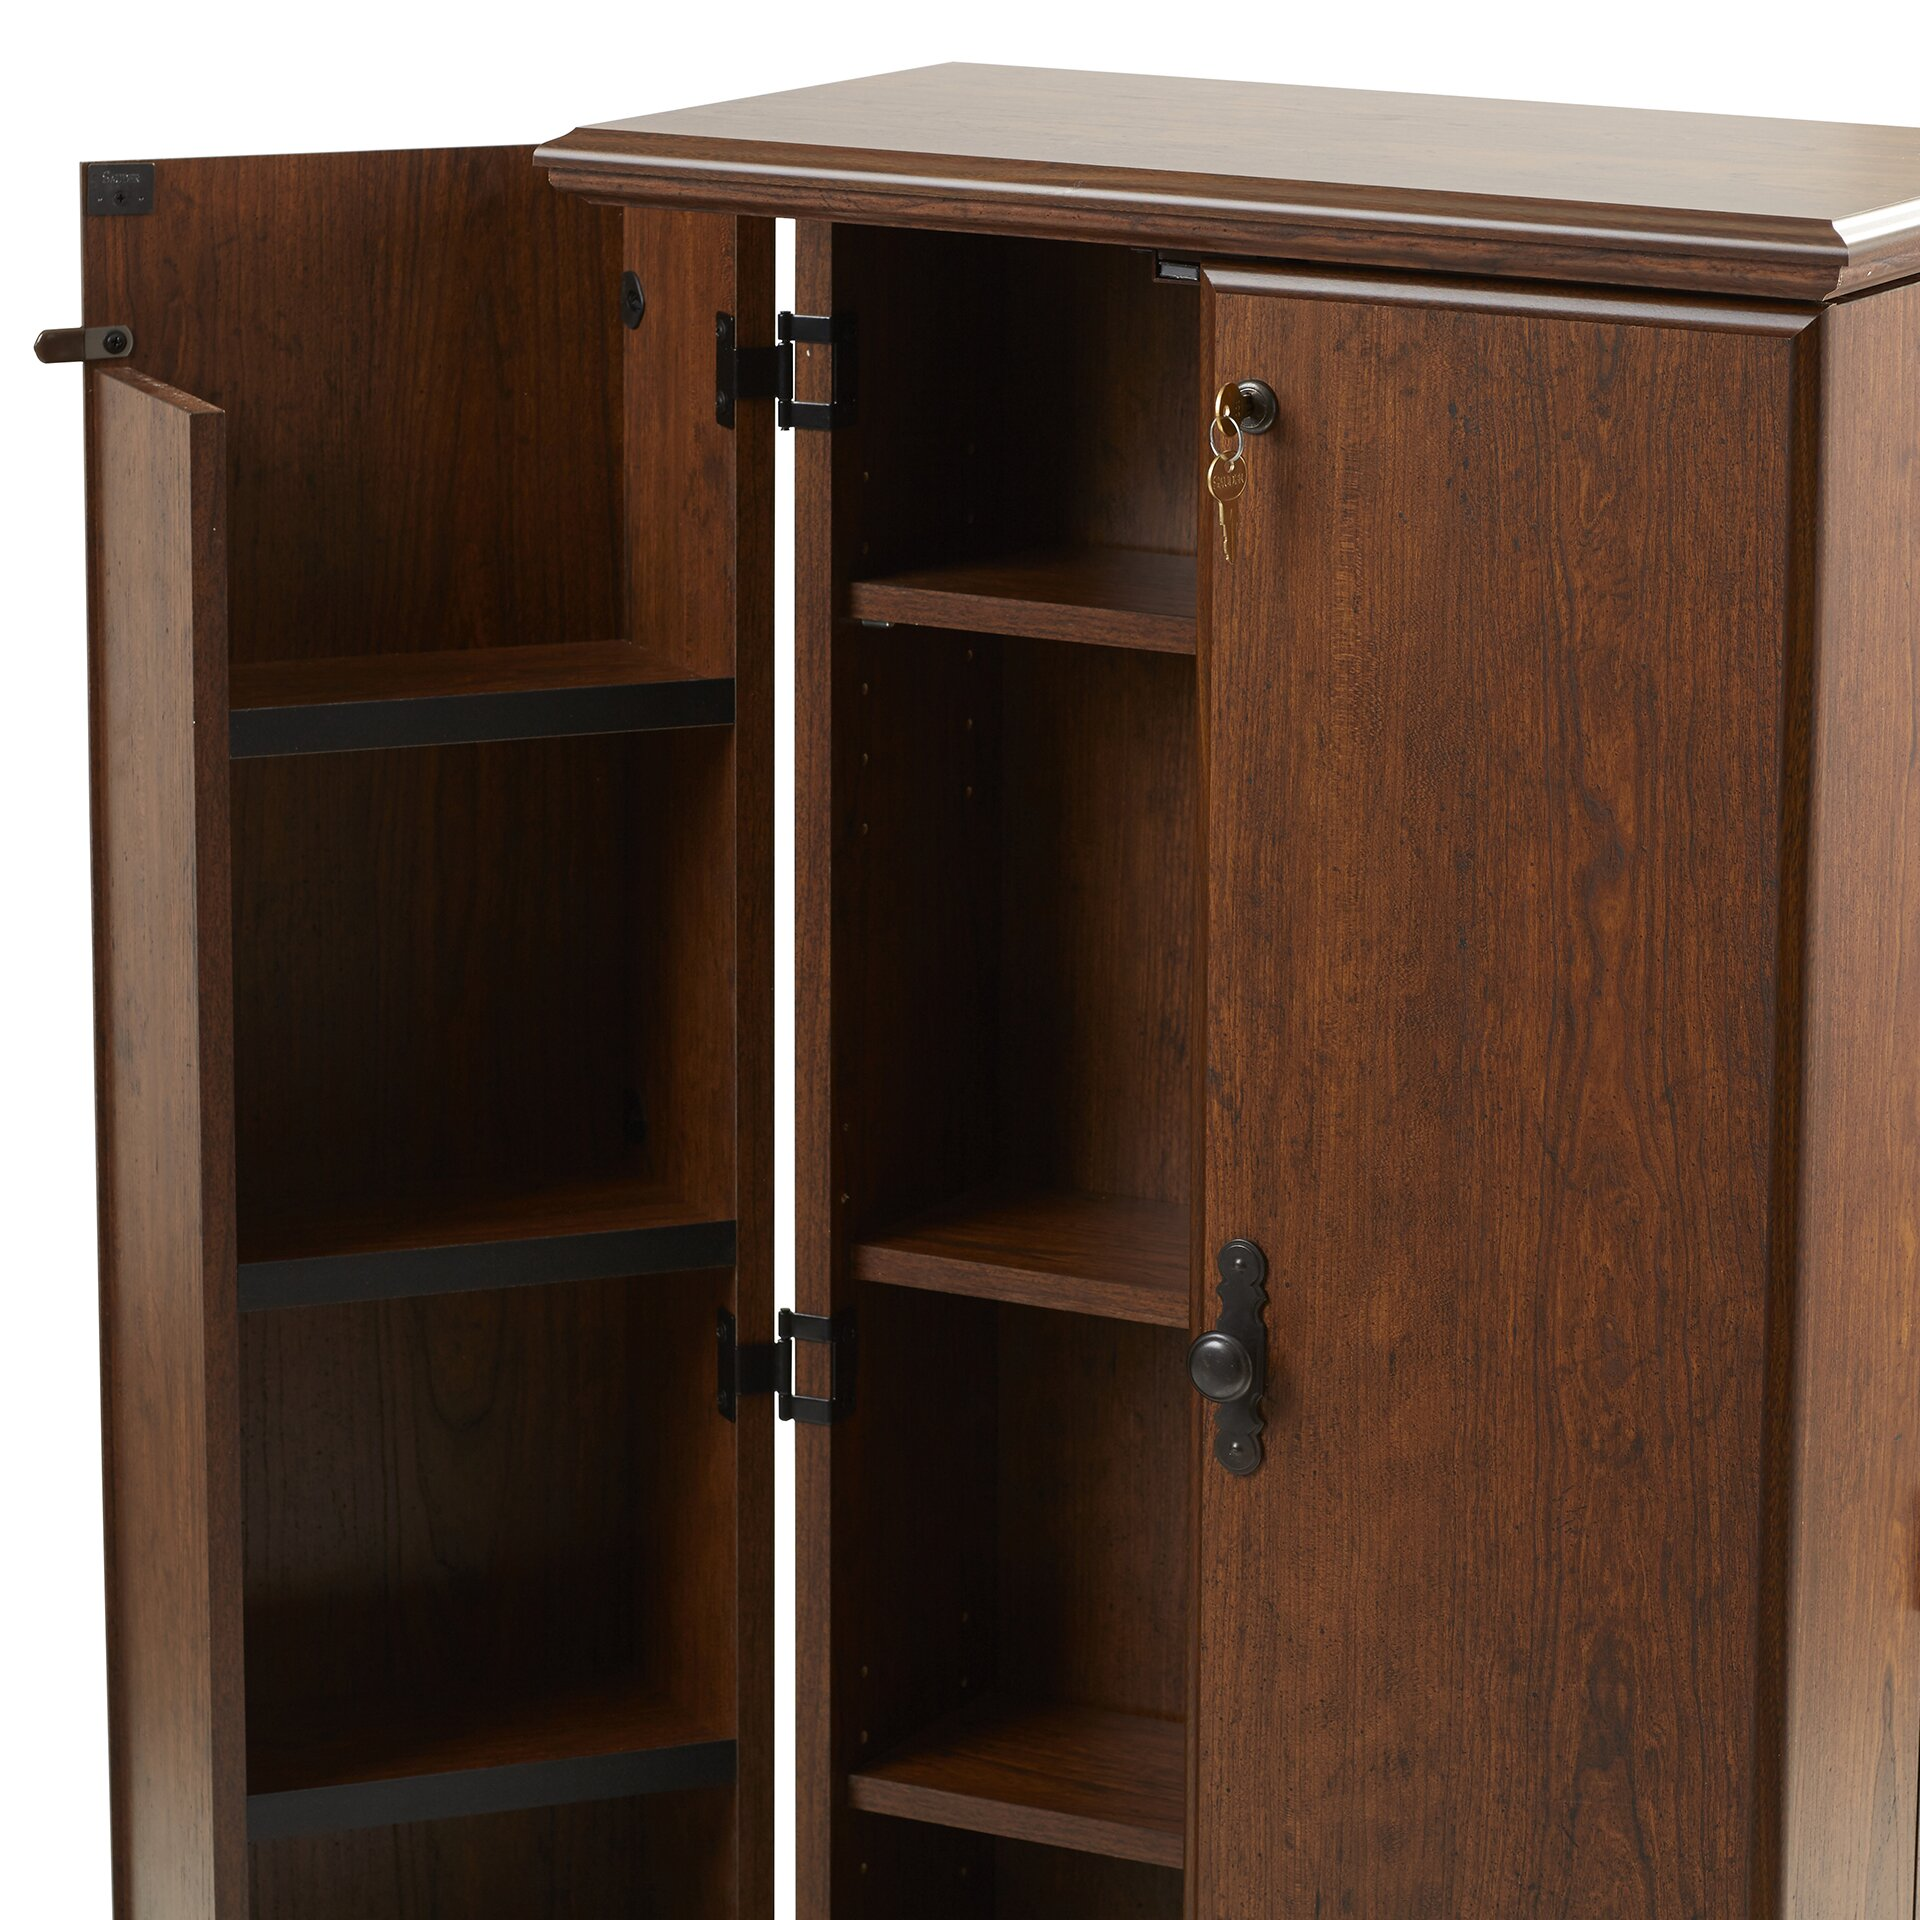 Three posts 2 door storage cabinet reviews wayfair for One day doors and closets reviews